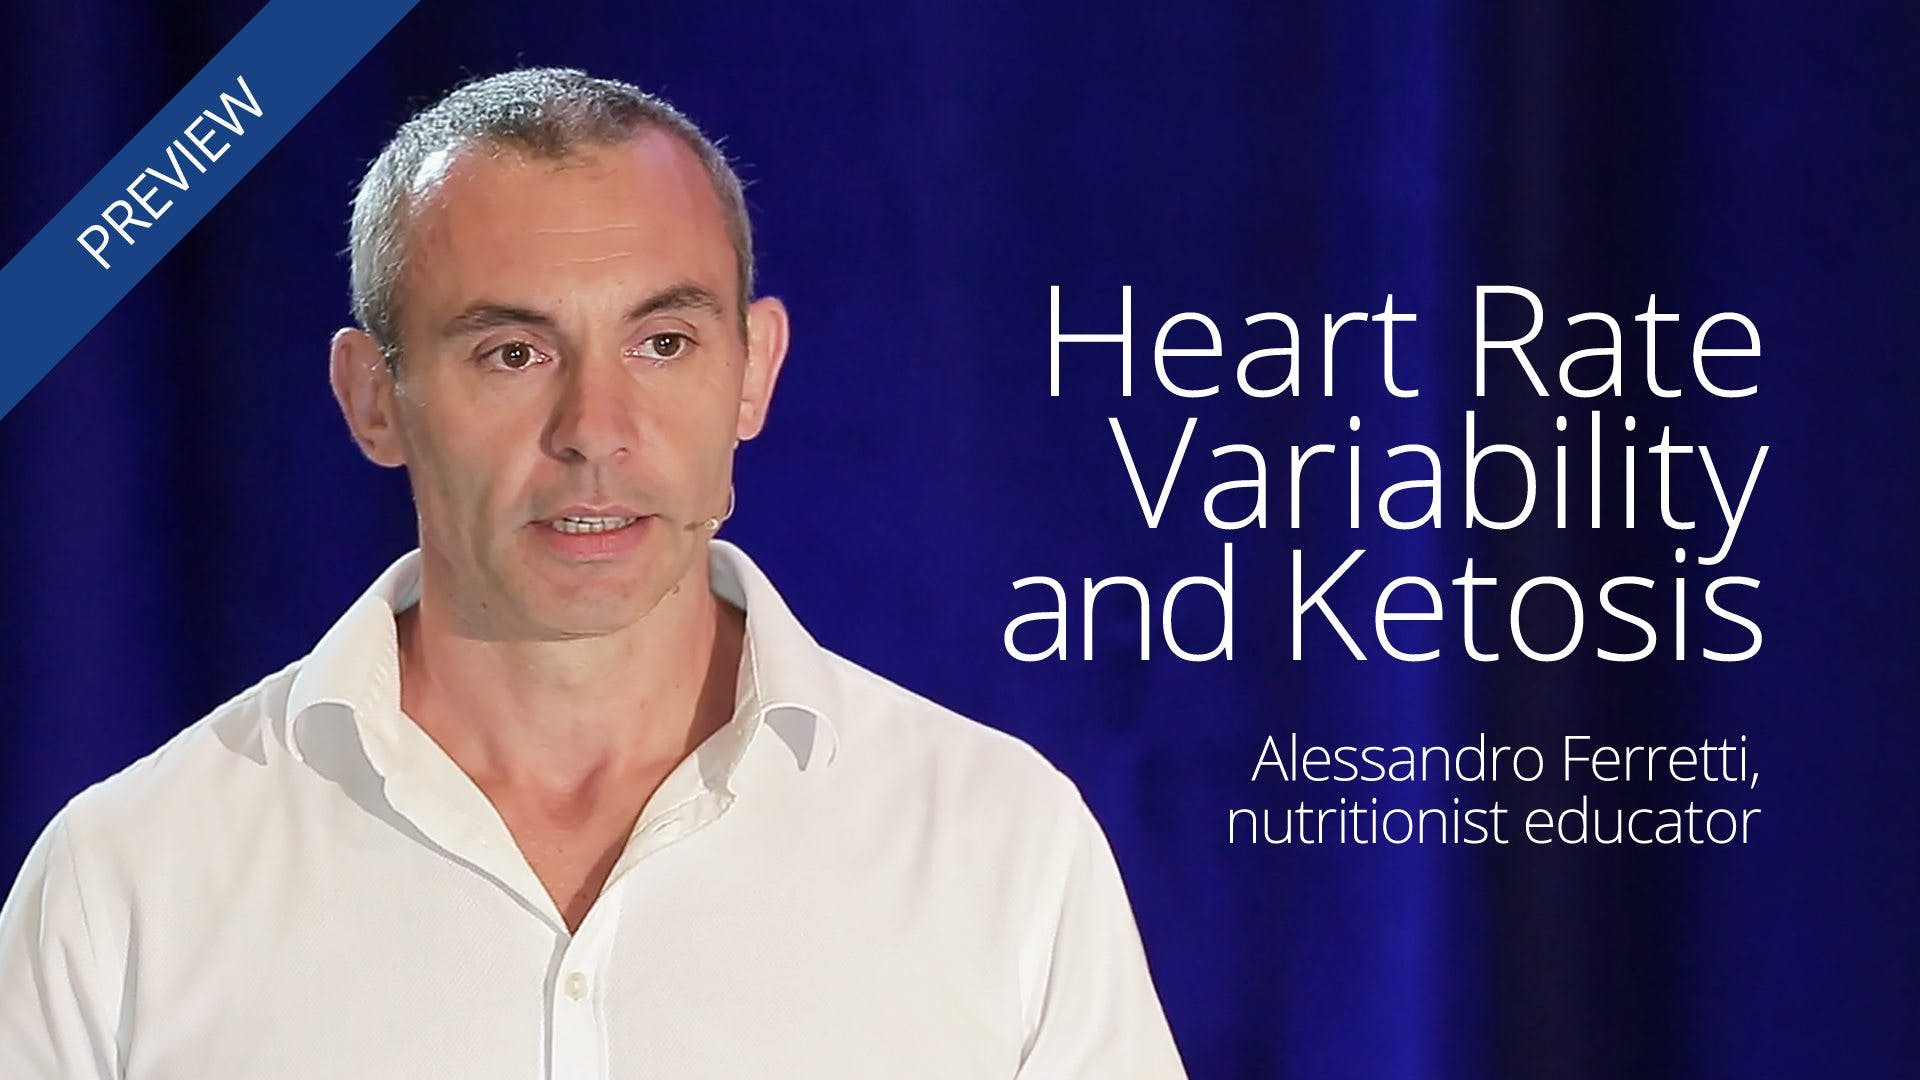 Heart Rate Variability and Ketosis